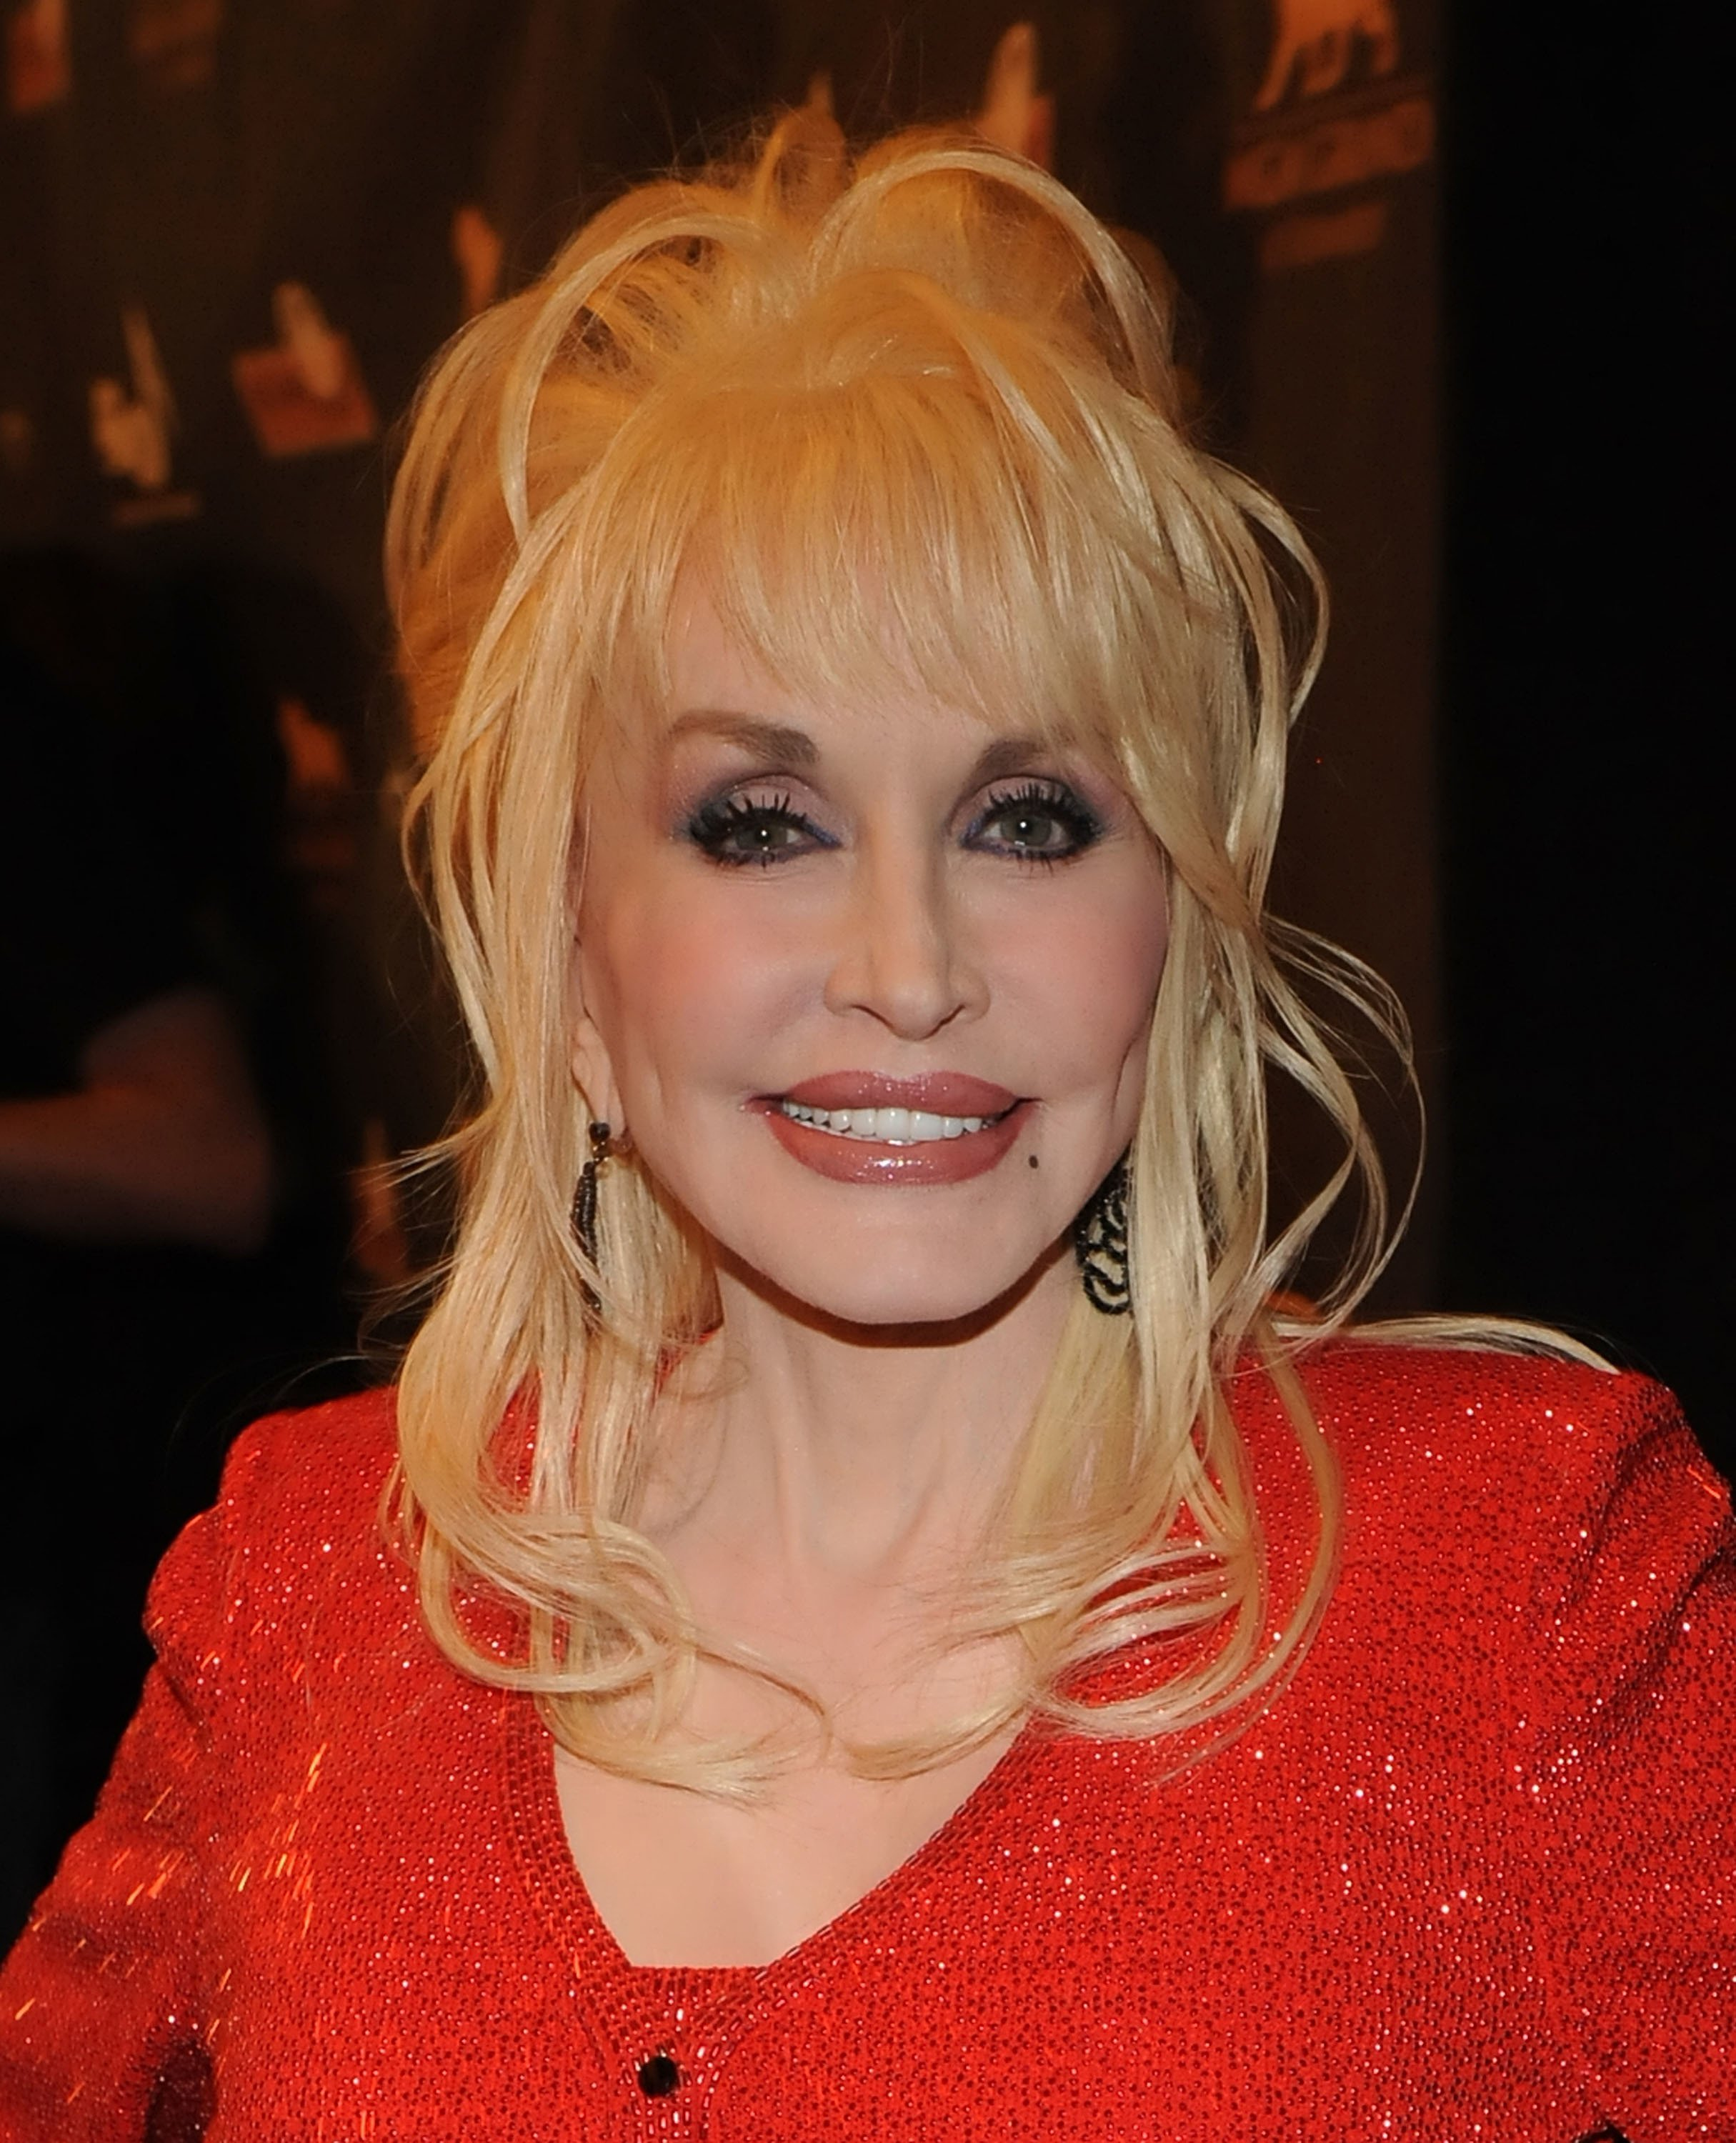 Singer/Songwriter Dolly Parton attends the Kenny Rogers: The First 50 Years award show at the MGM Grand at Foxwoods on April 10, 2010 | Photo: Getty Images